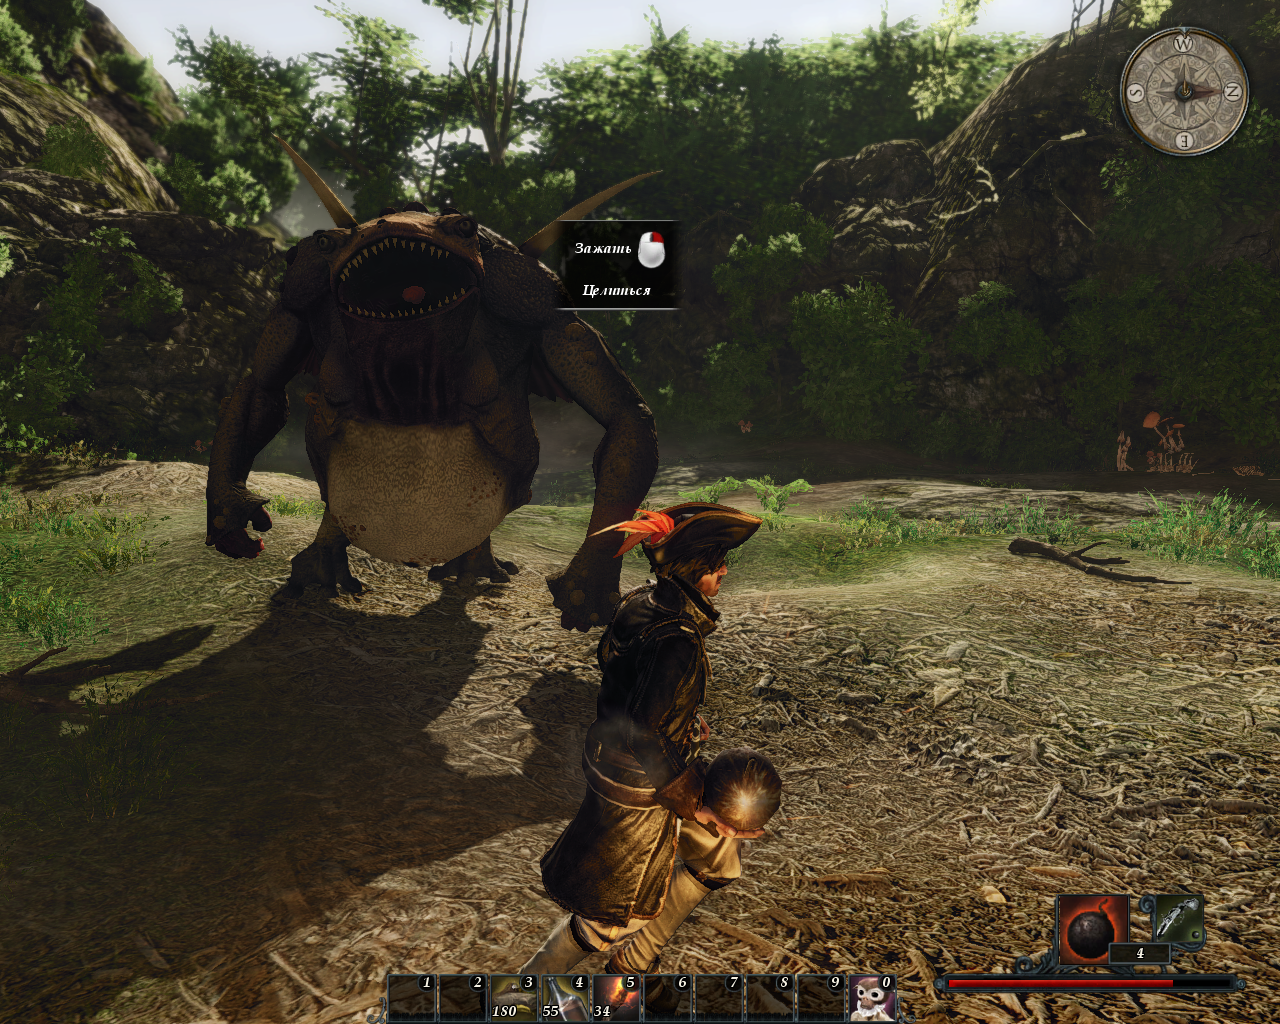 Risen 2: Dark Waters Windows Let's feed the big guy with bombs